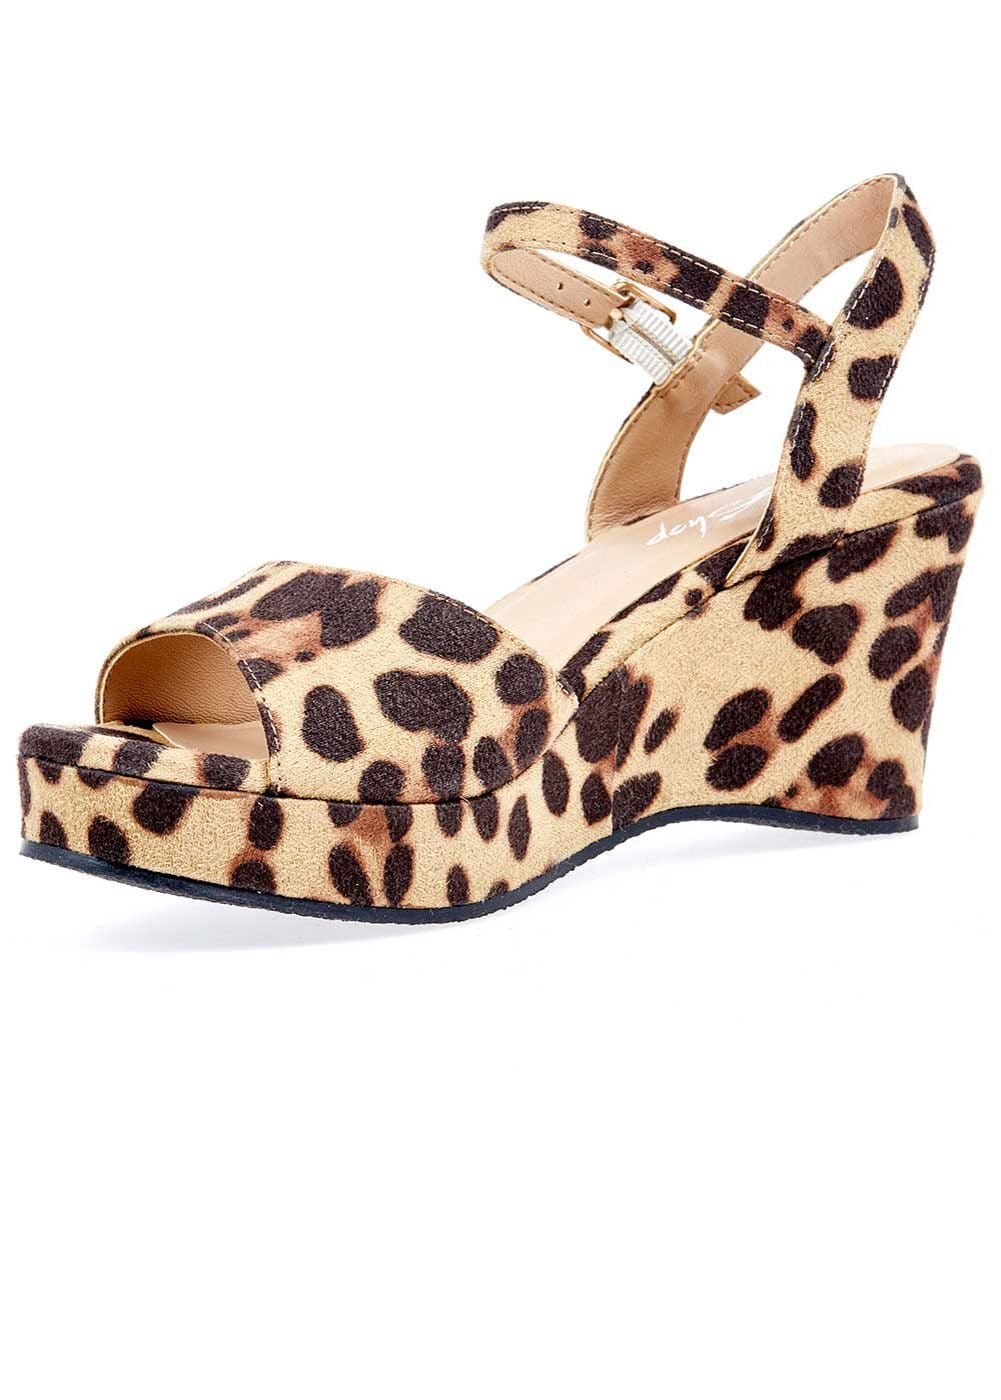 Girls Leopard Wedge Party Sandal - 3/4